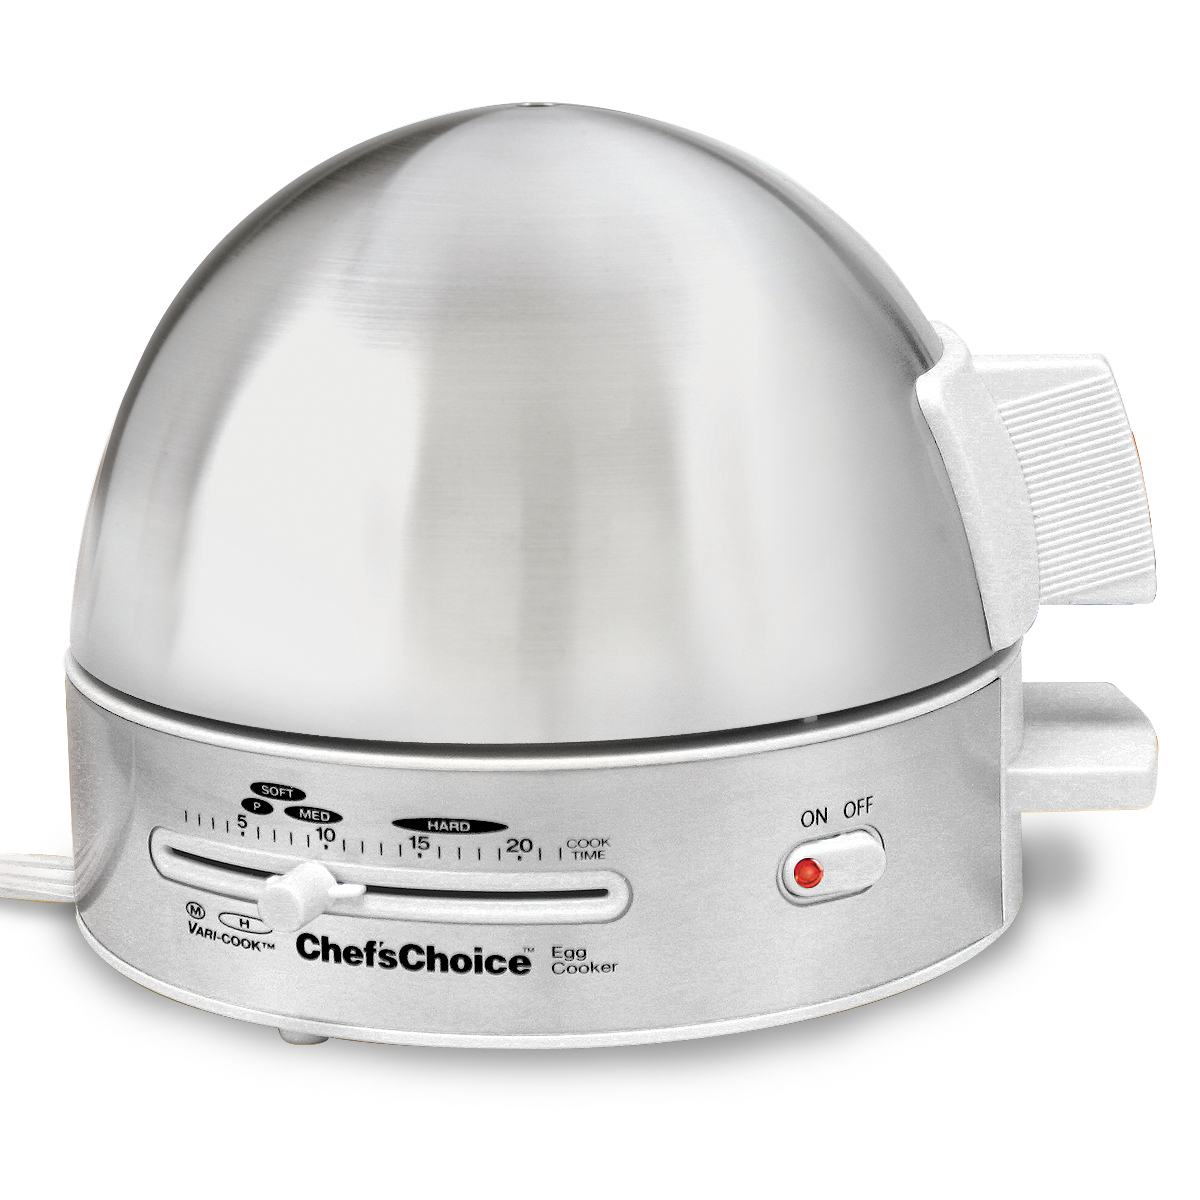 Chef's Choice White M810 Gourmet Egg Cooker